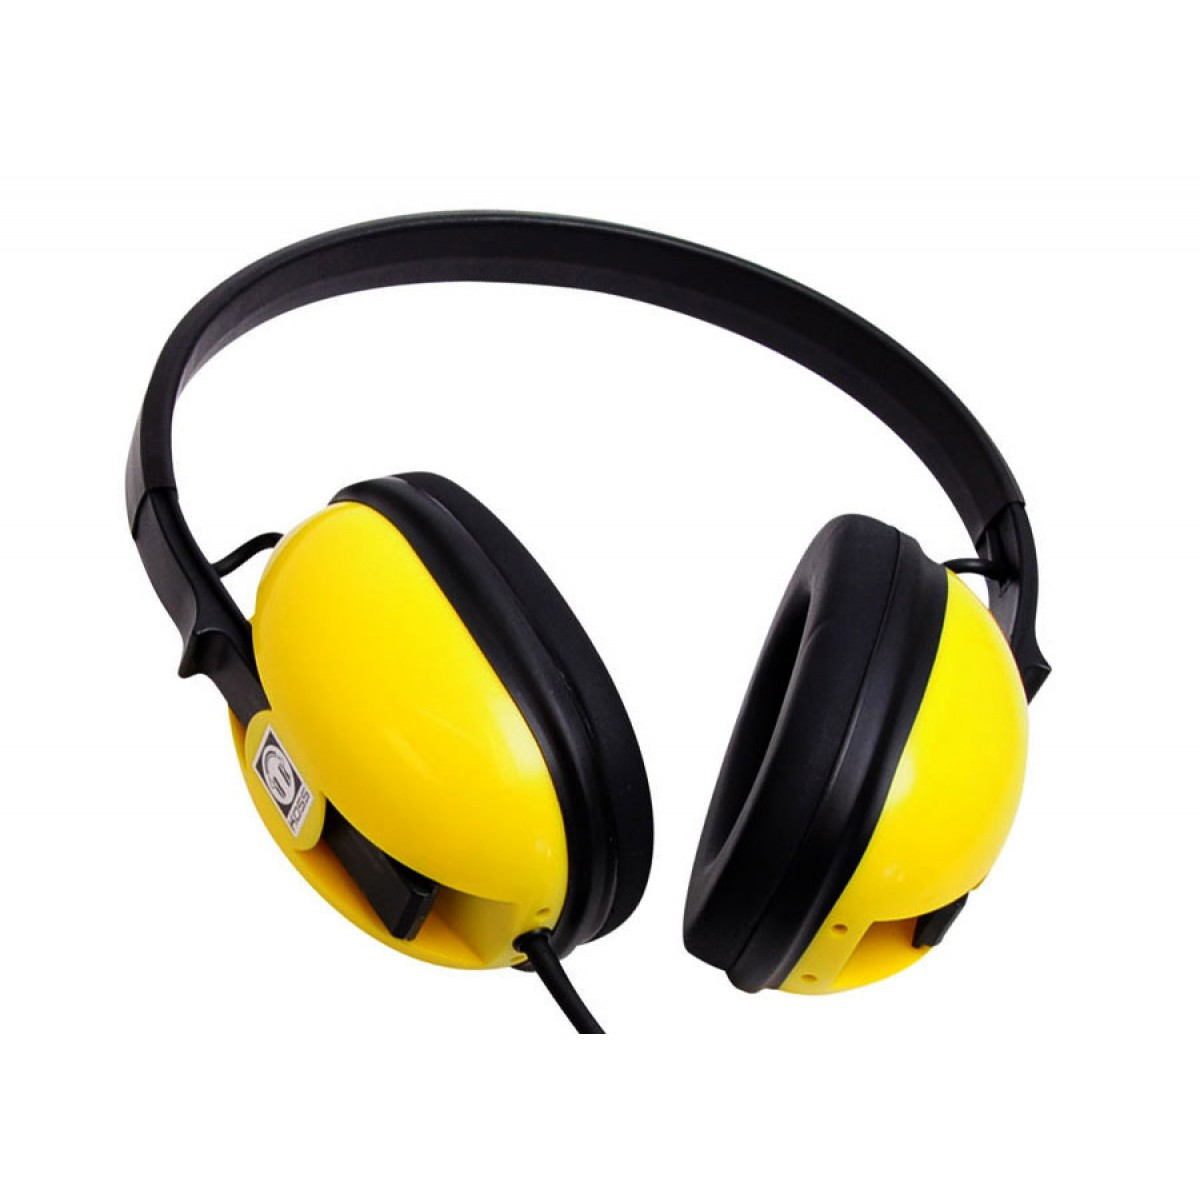 237 30110258_1f metal detecting headphones for sale kellyco  at mifinder.co